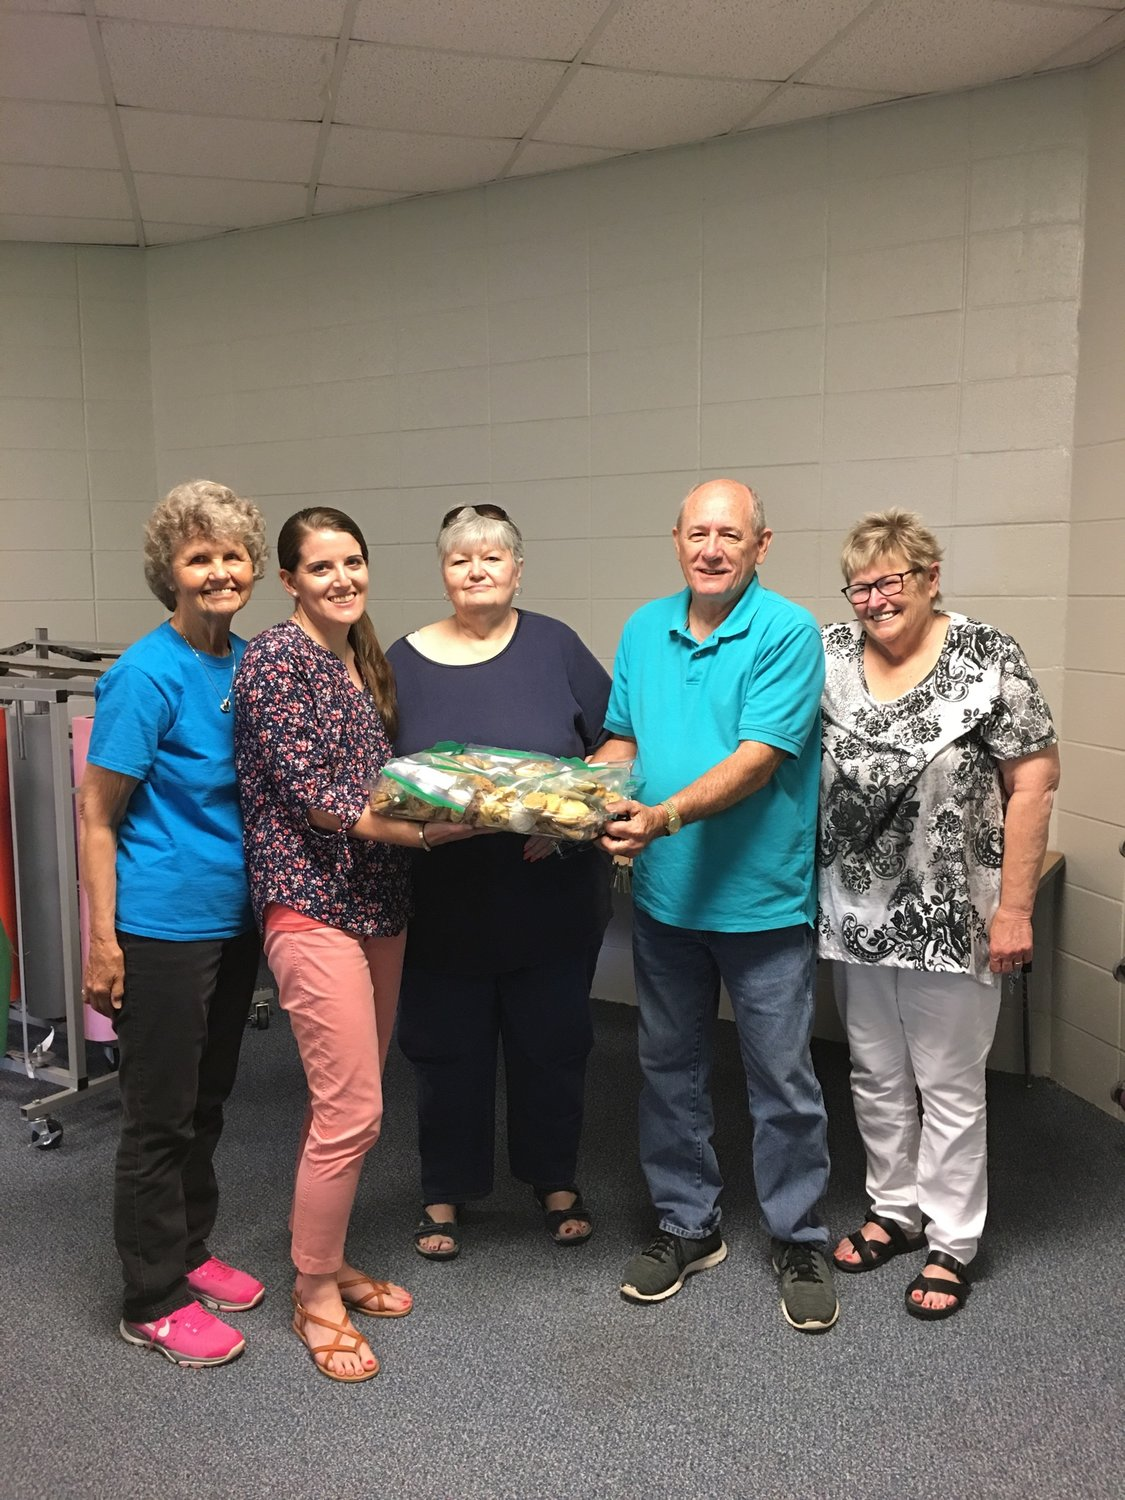 Left to right: Sharon Davis, Elberta Elementary School Secretary, Crystal Gregg, Rochelle Brooks, Tom Harris and Barbara Harris.